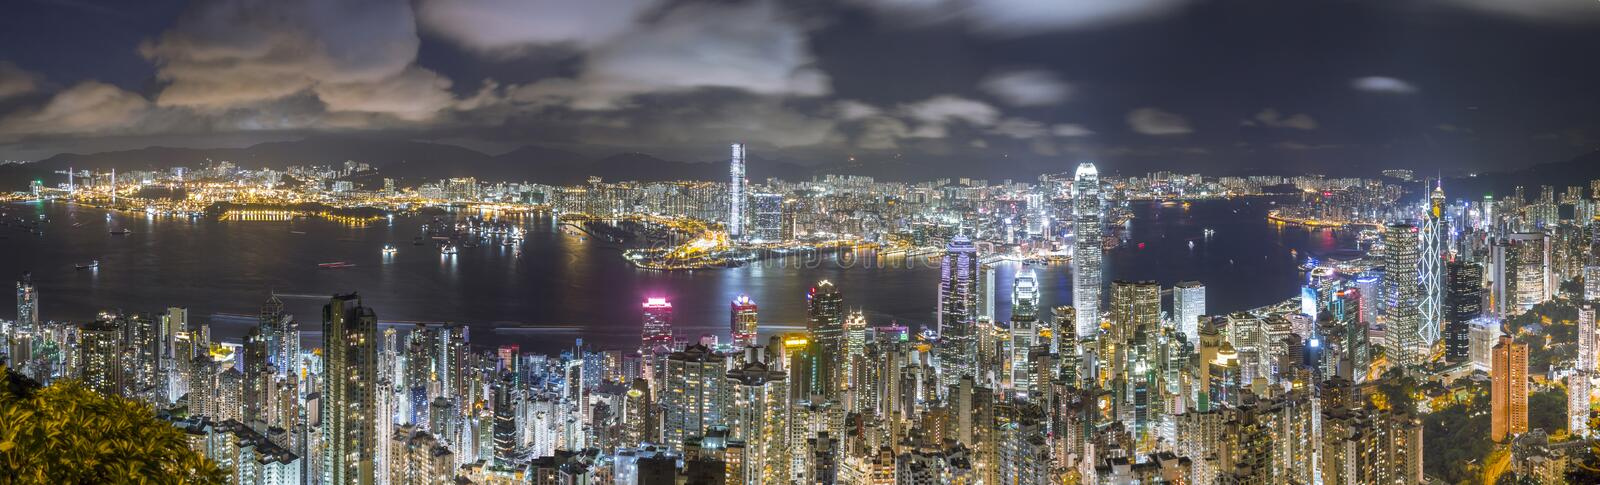 Hong Kong Panorama Skyline na noite, vista do pico imagem de stock royalty free